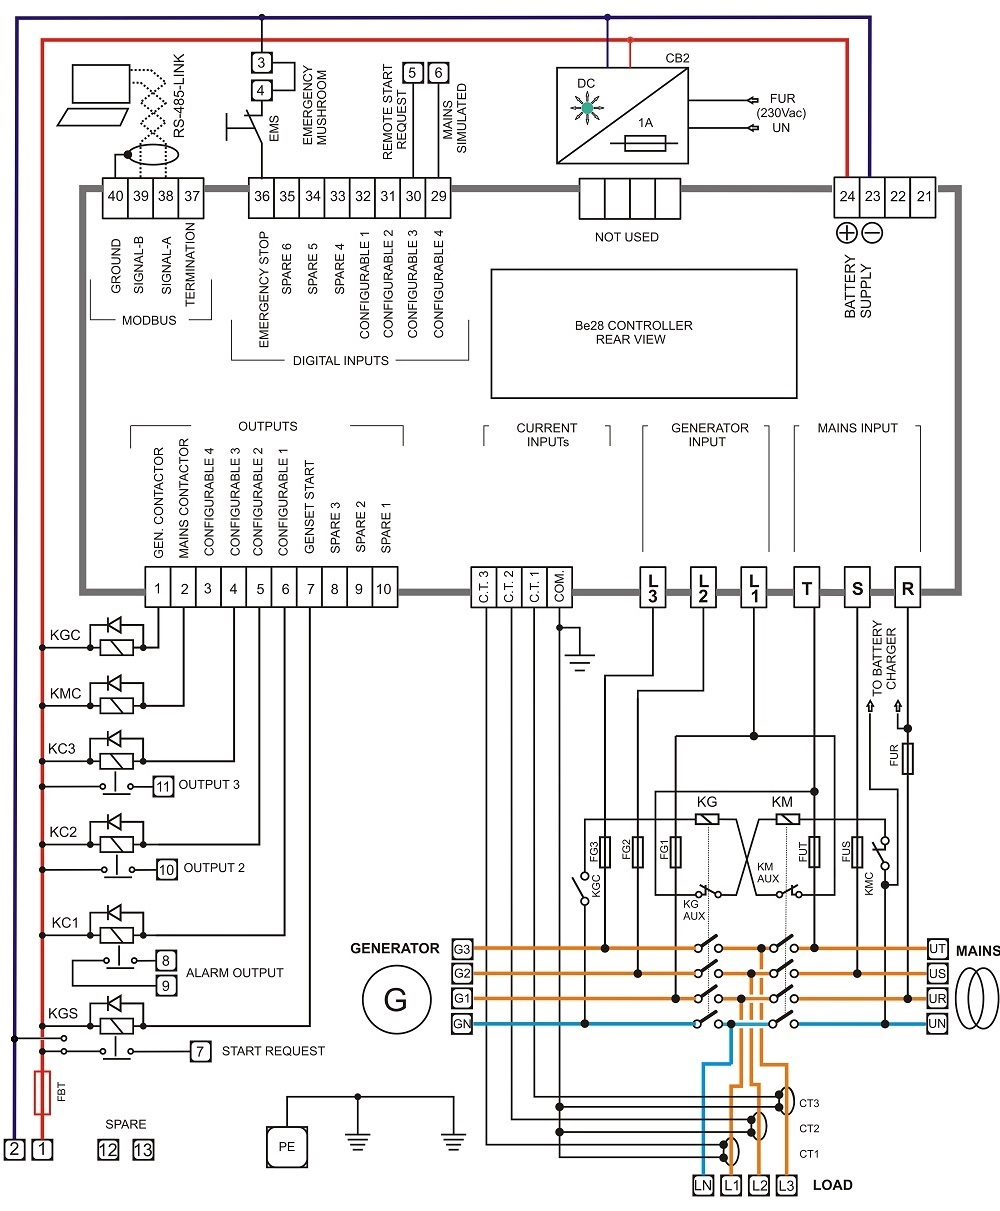 Plc Panel Wiring Diagram Pdf Sample Wiring Diagram Sample